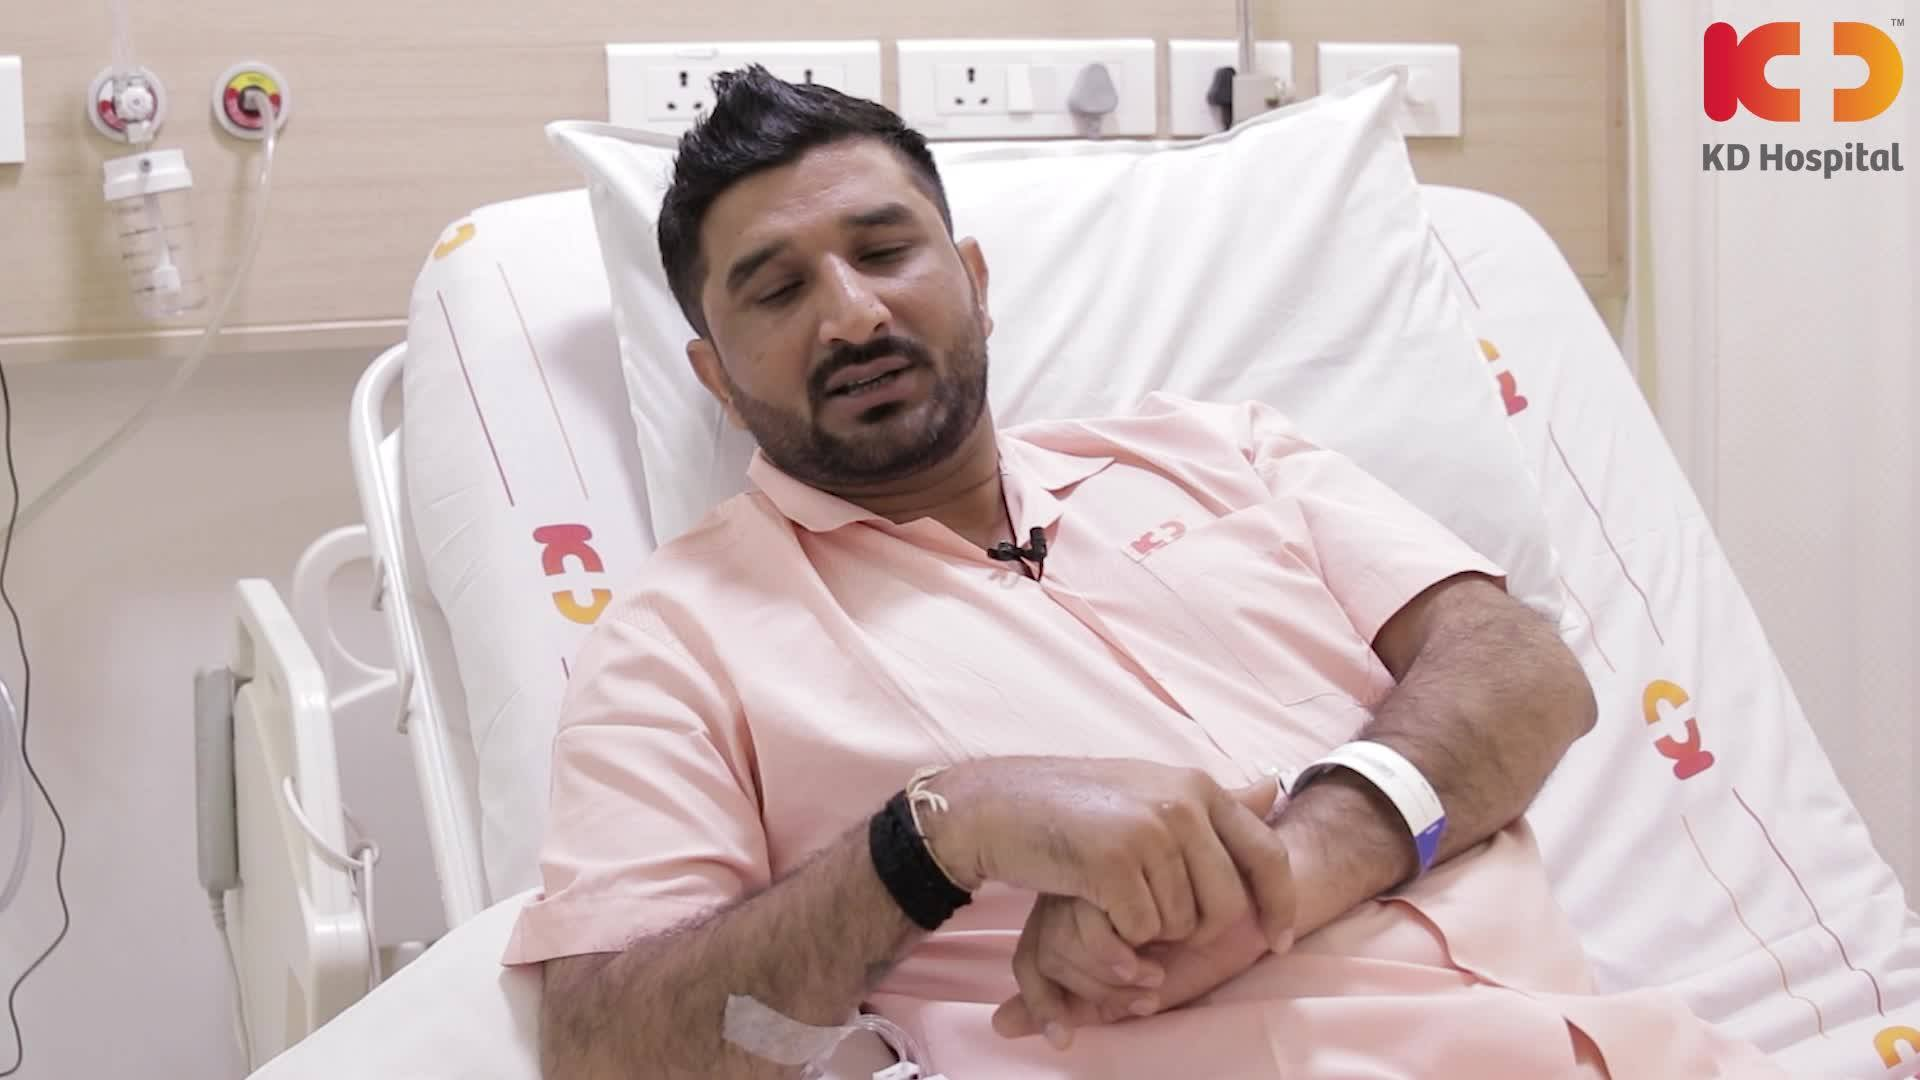 Let's hear Gaman Santhal again  KD Hospital feels overwhelmed by finding a place in the Heart of  Gaman Santhal who is extremely talented and popular as a Gujarati Singer and Lyricist  Let's watch Gaman Santhal's journey as a Patient in KD Hospital...  #KDHospital #Compassion #Doctors  #Diagnosis #Therapeutics #goodhealth #patienttestimonial #patient #testimonial #testimony #soical #socialmediamarketing #digitalmarketing #wellness #wellnessthatworks #Ahmedabad #Gujarat #India